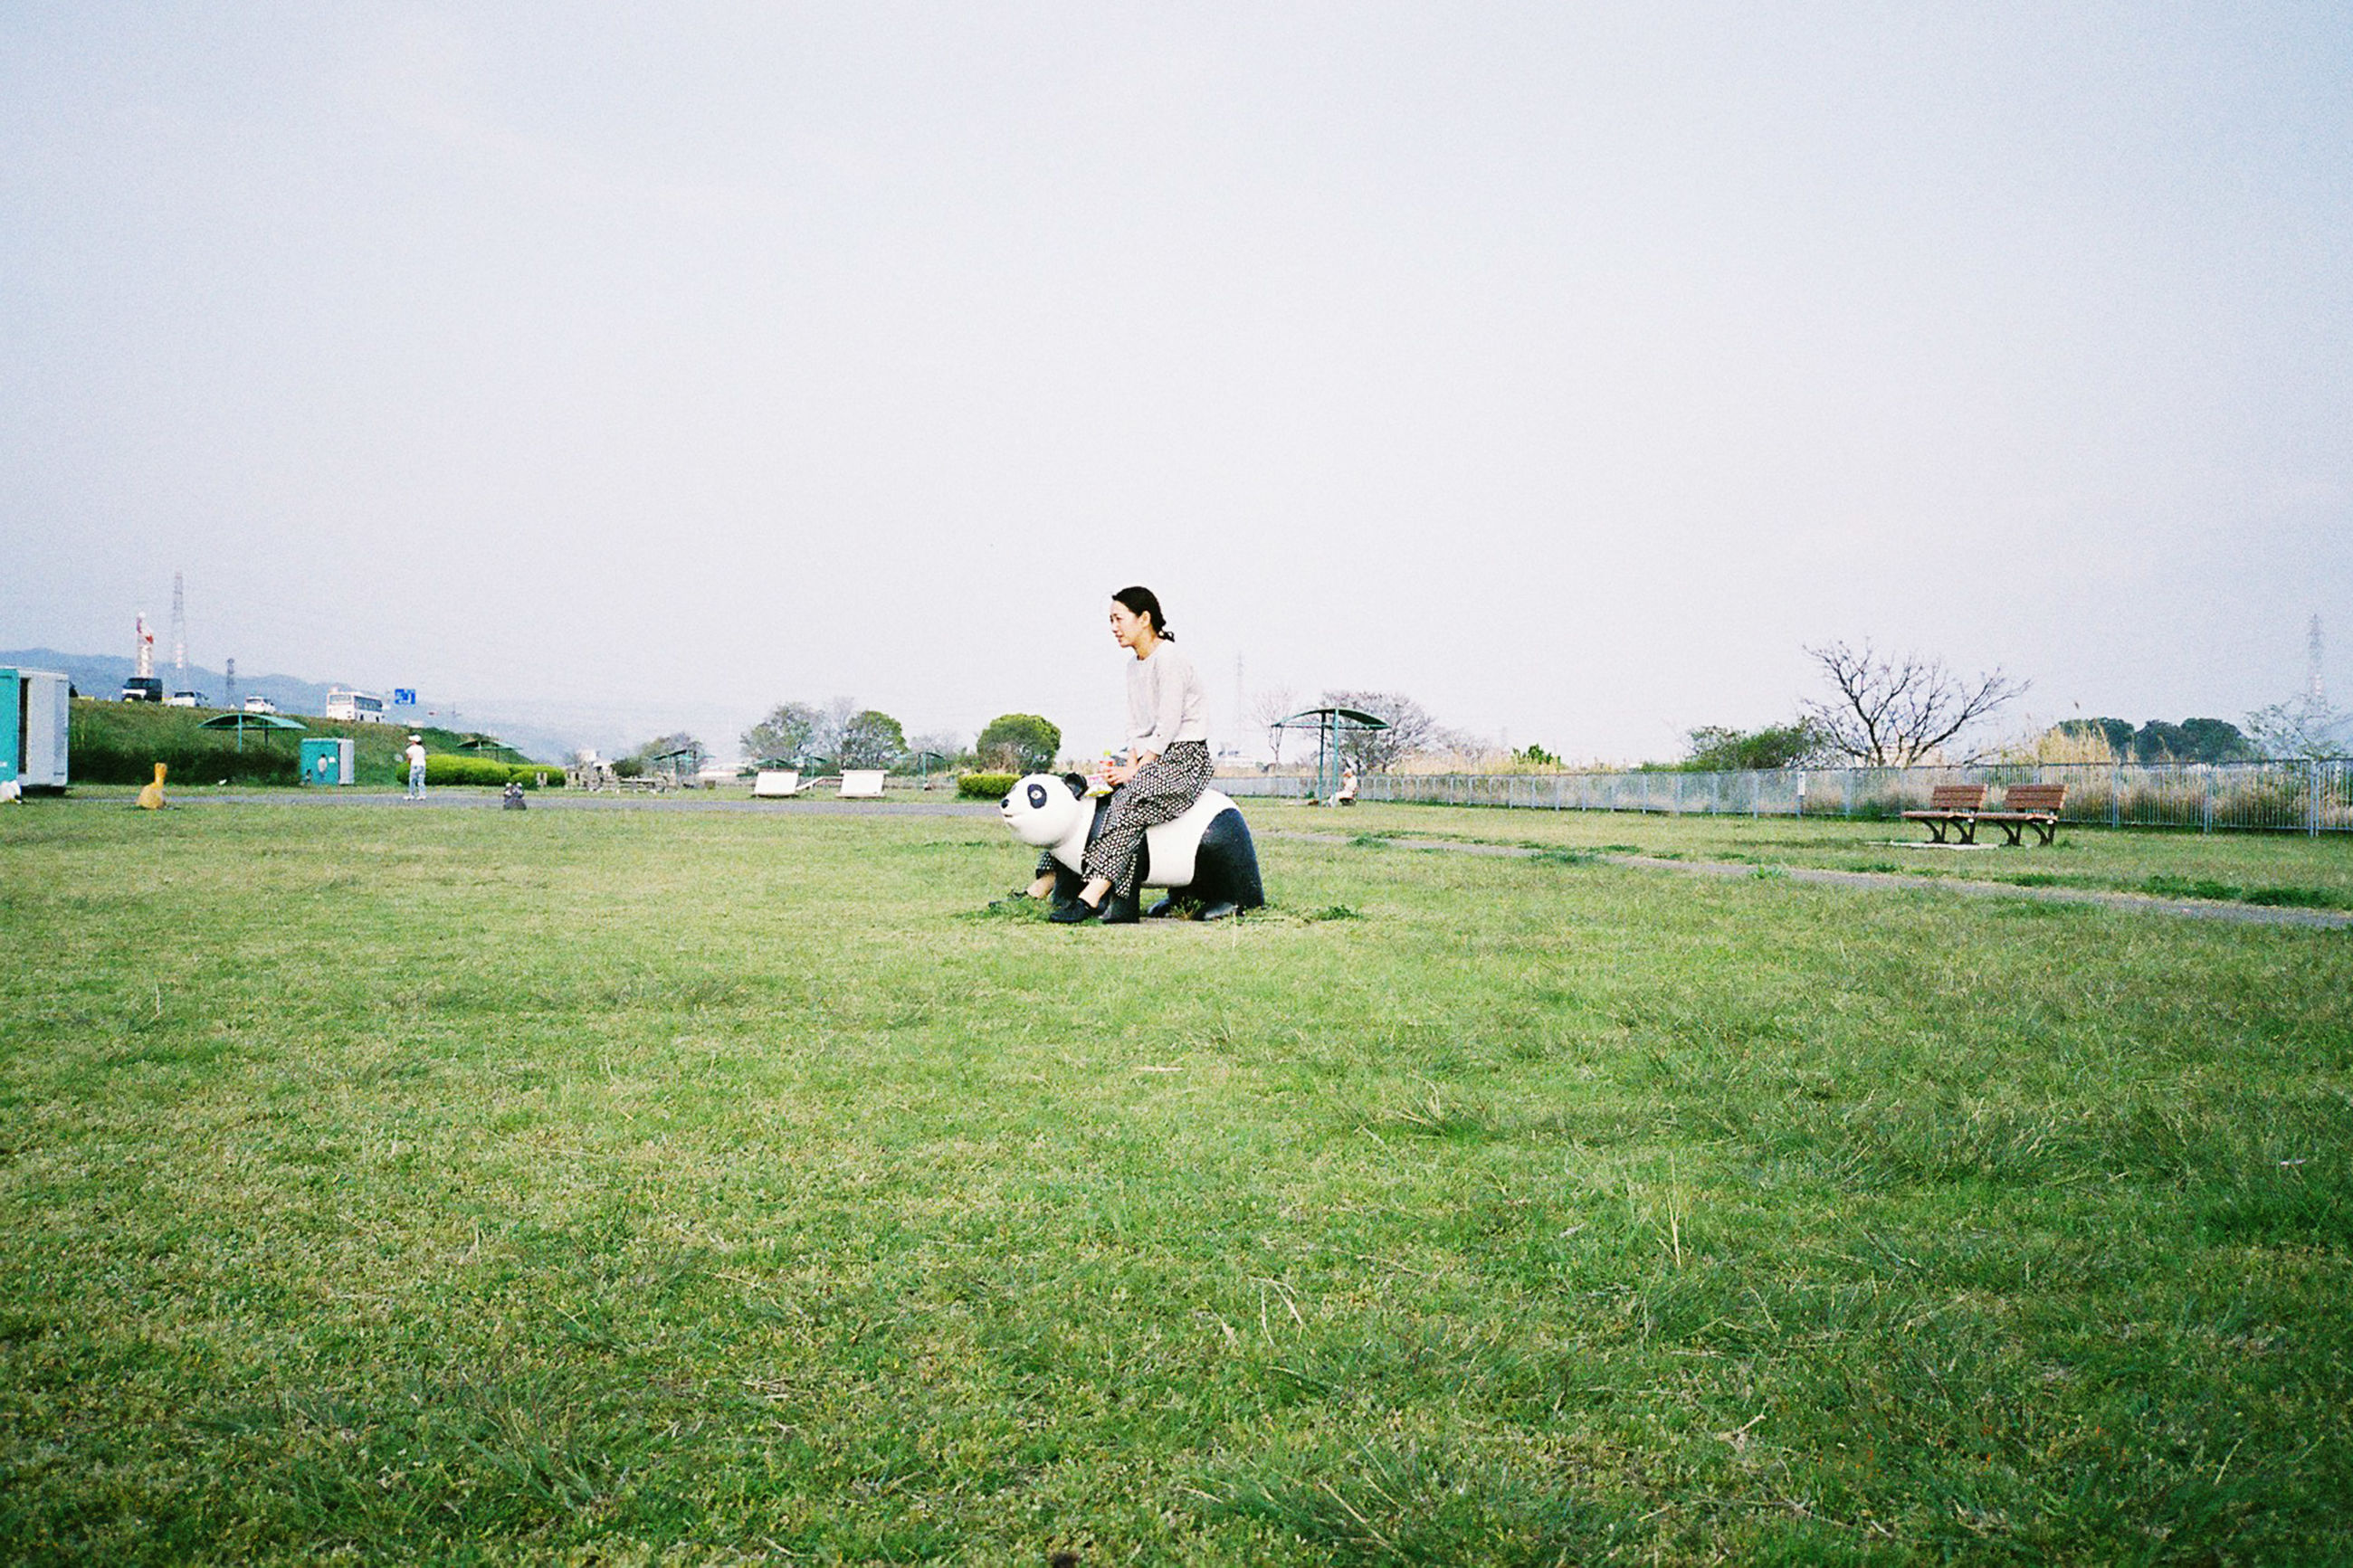 sitting, grass, sky, land, field, clear sky, real people, nature, full length, copy space, day, men, lifestyles, one person, plant, leisure activity, green color, environment, casual clothing, outdoors